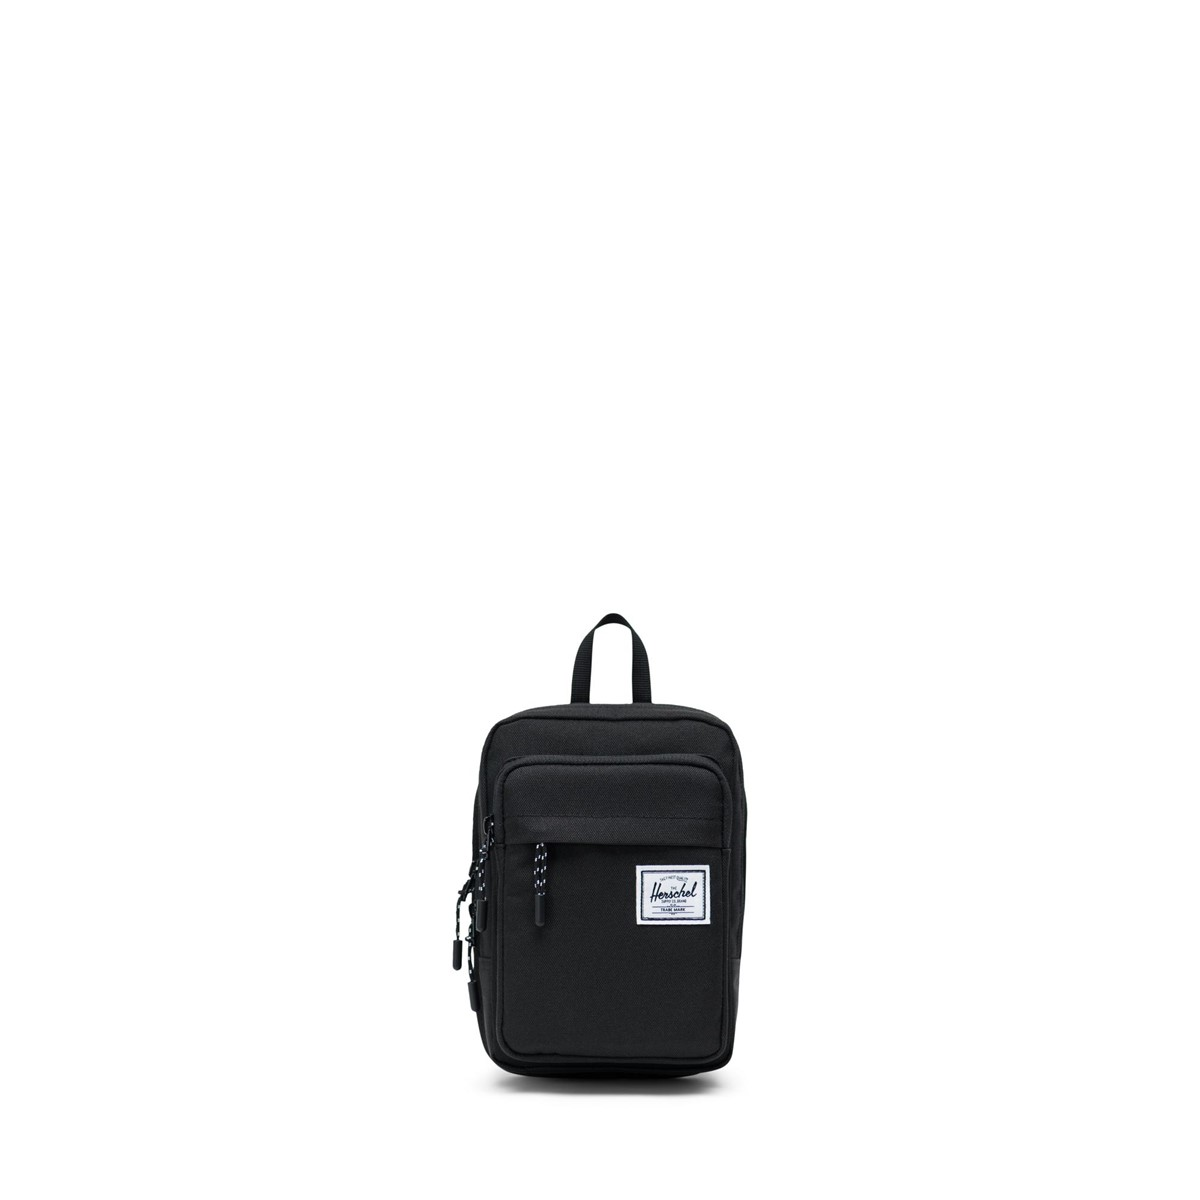 Form Hip Bag in Black